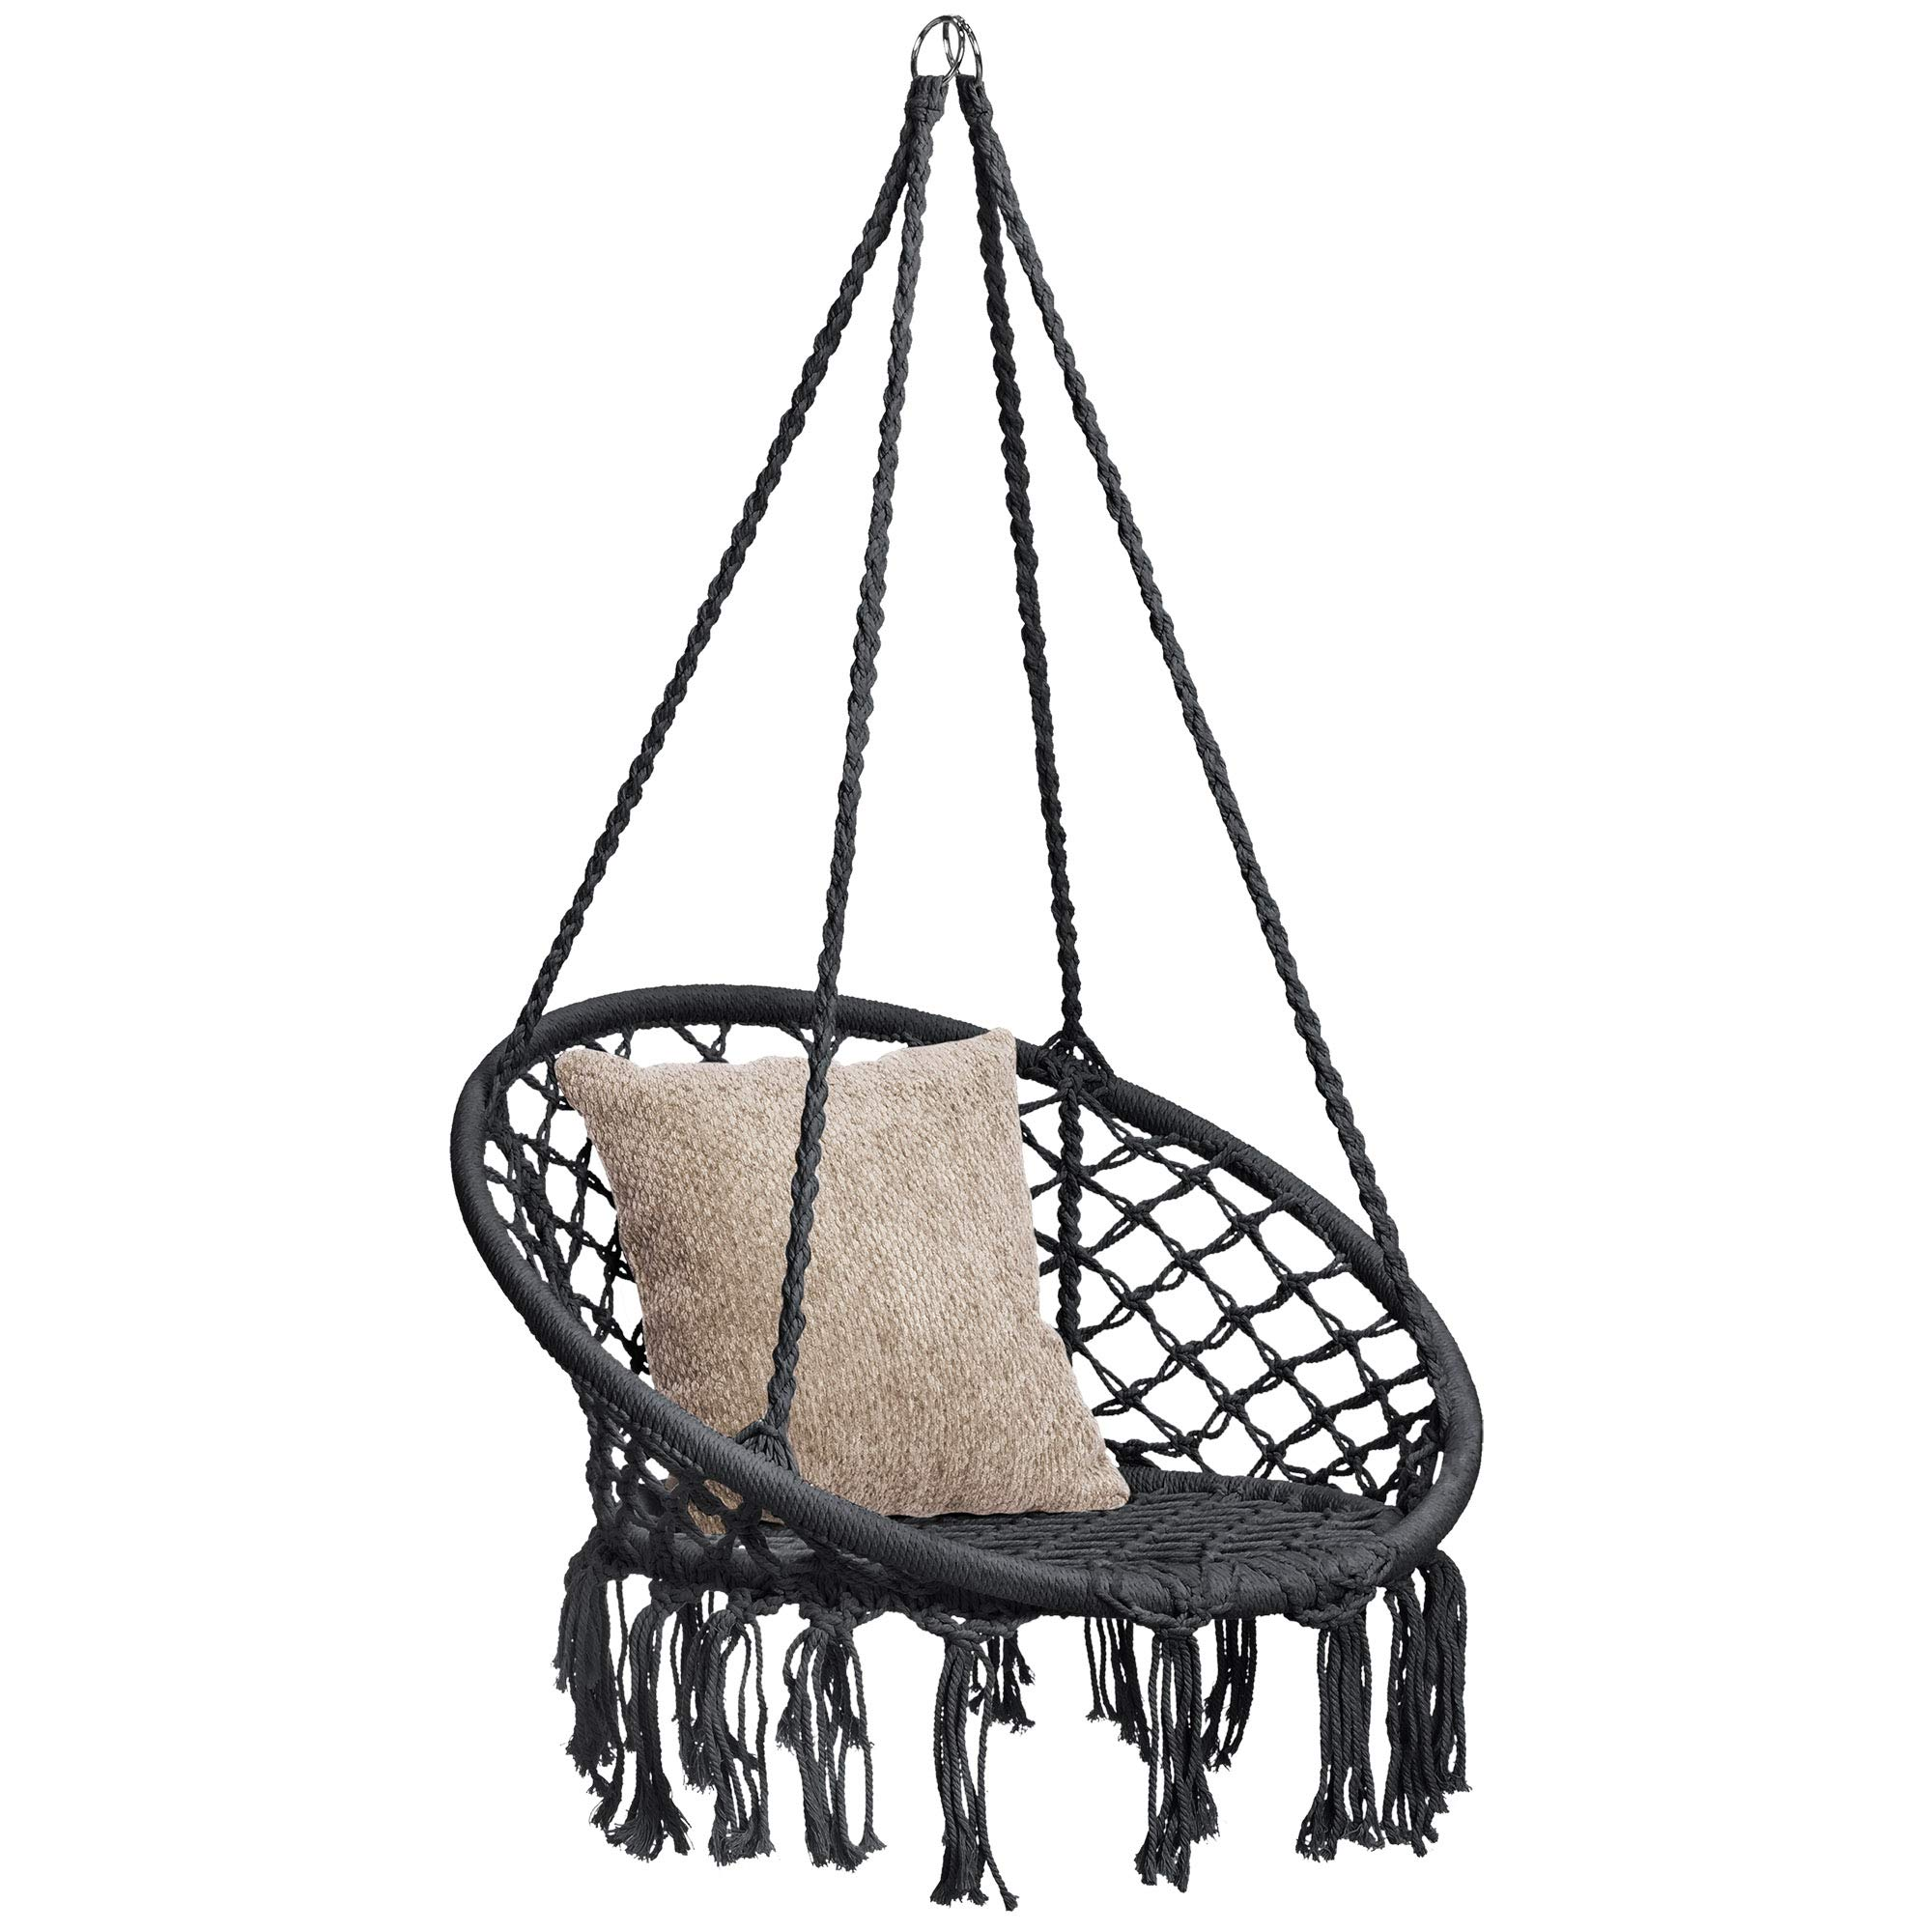 Best Choice Products Indoor Outdoor Hanging Cotton Macramé Rope Hammock Lounge Swing Accent Chair with Fringe Tassels, Black